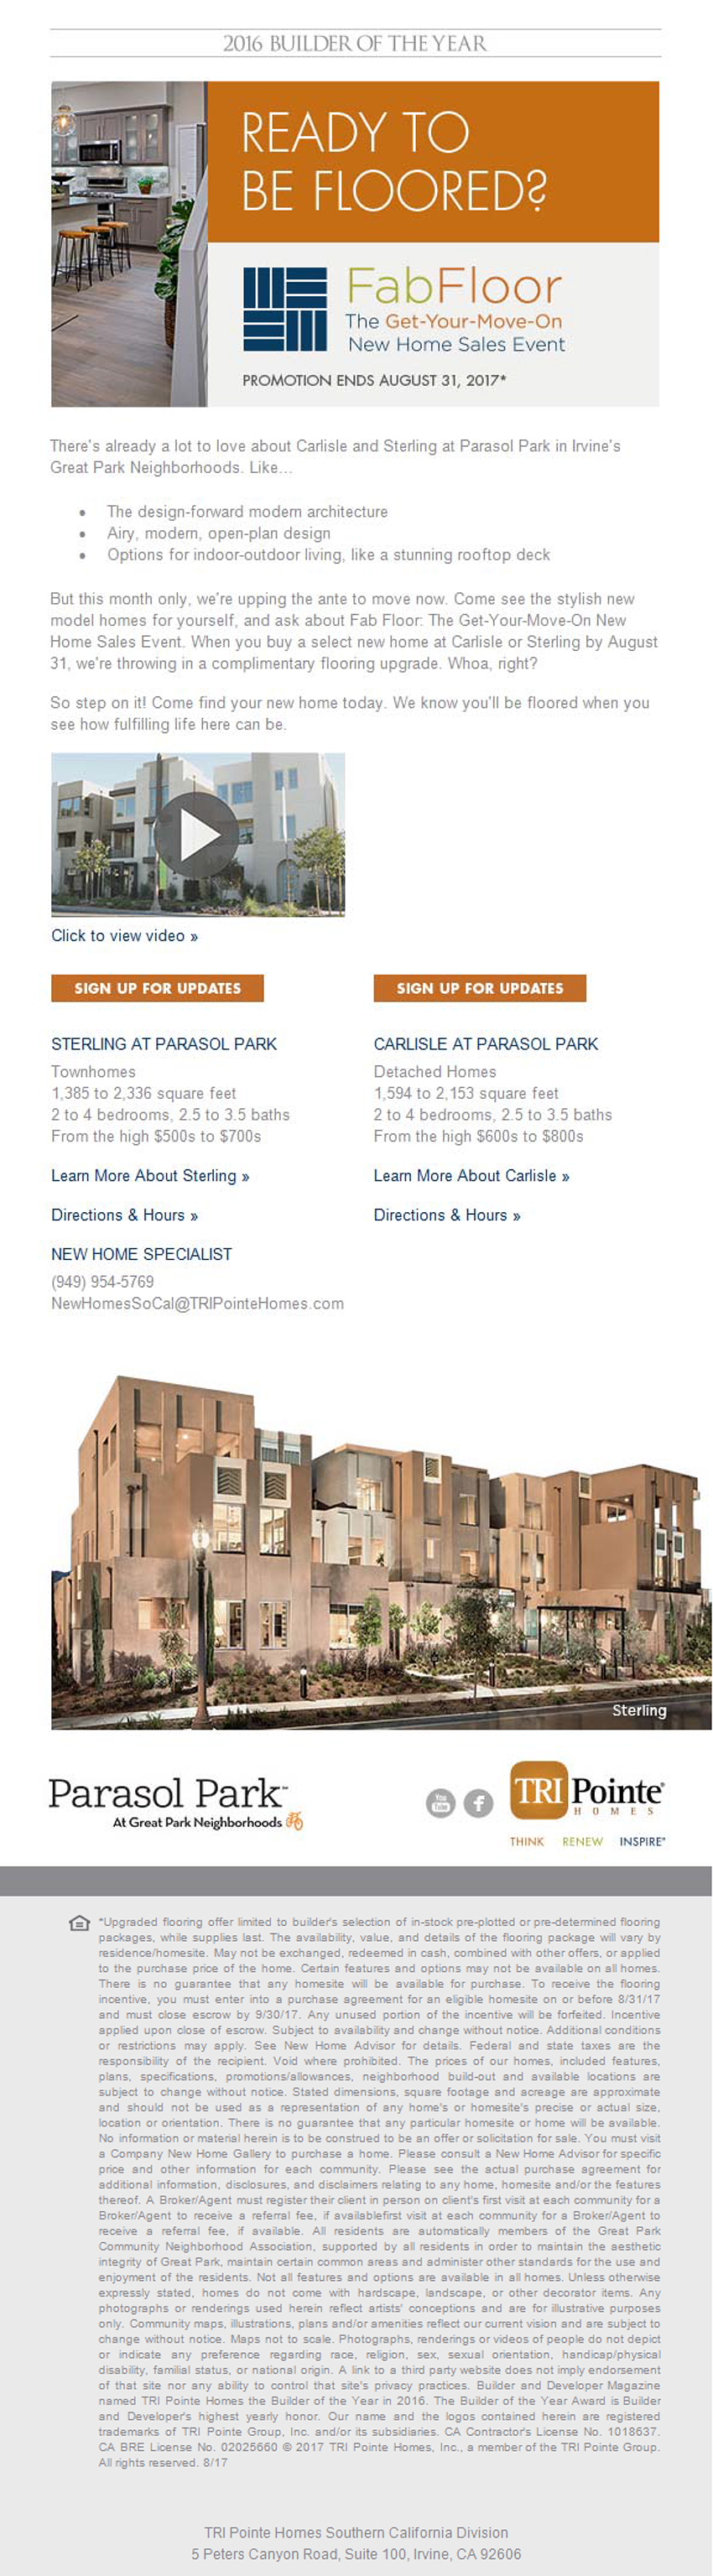 New Homes For Sale In Irvine California Fab Floor Sales Event Free Flooring Your Home Upgrade Promotion Ends 8 31